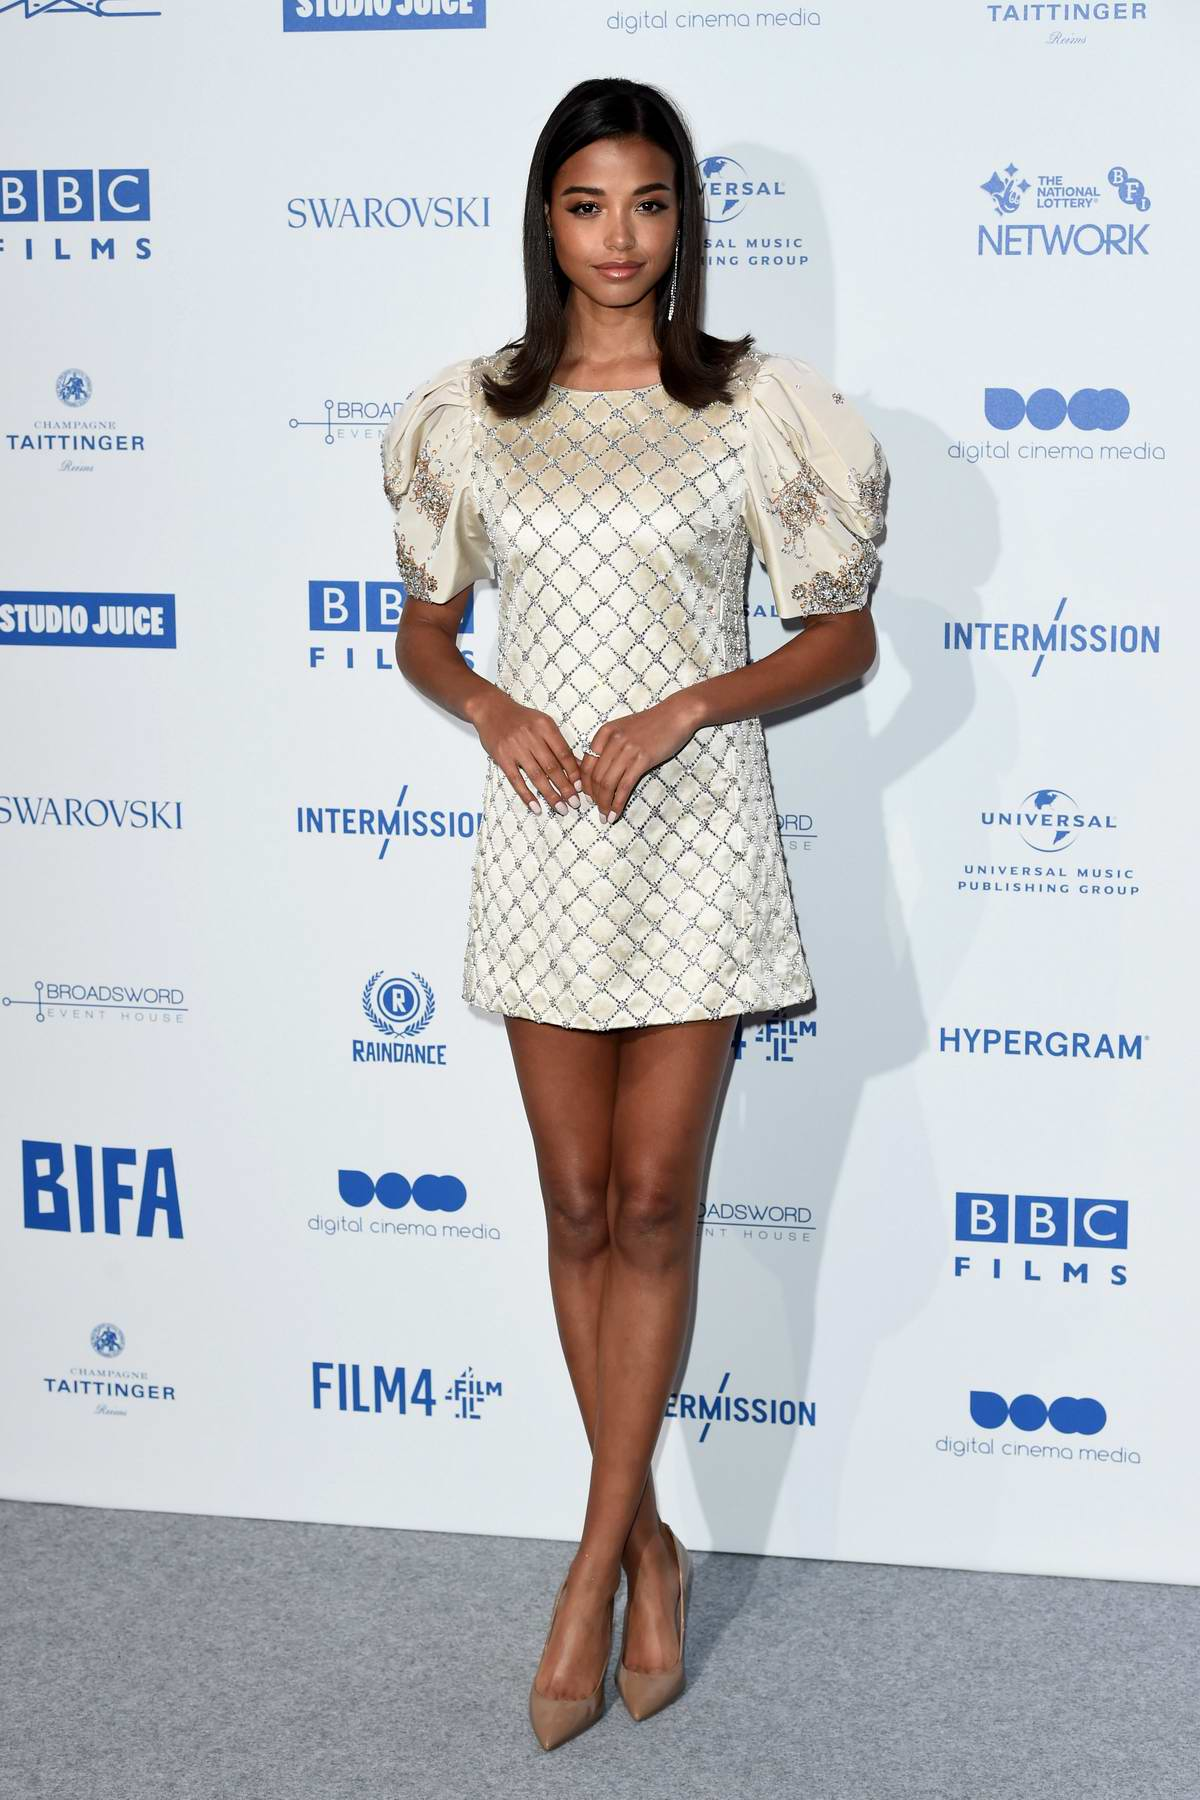 Ella Balinska attends the British Independent Film Awards 2019 at Old Billingsgate in London, UK